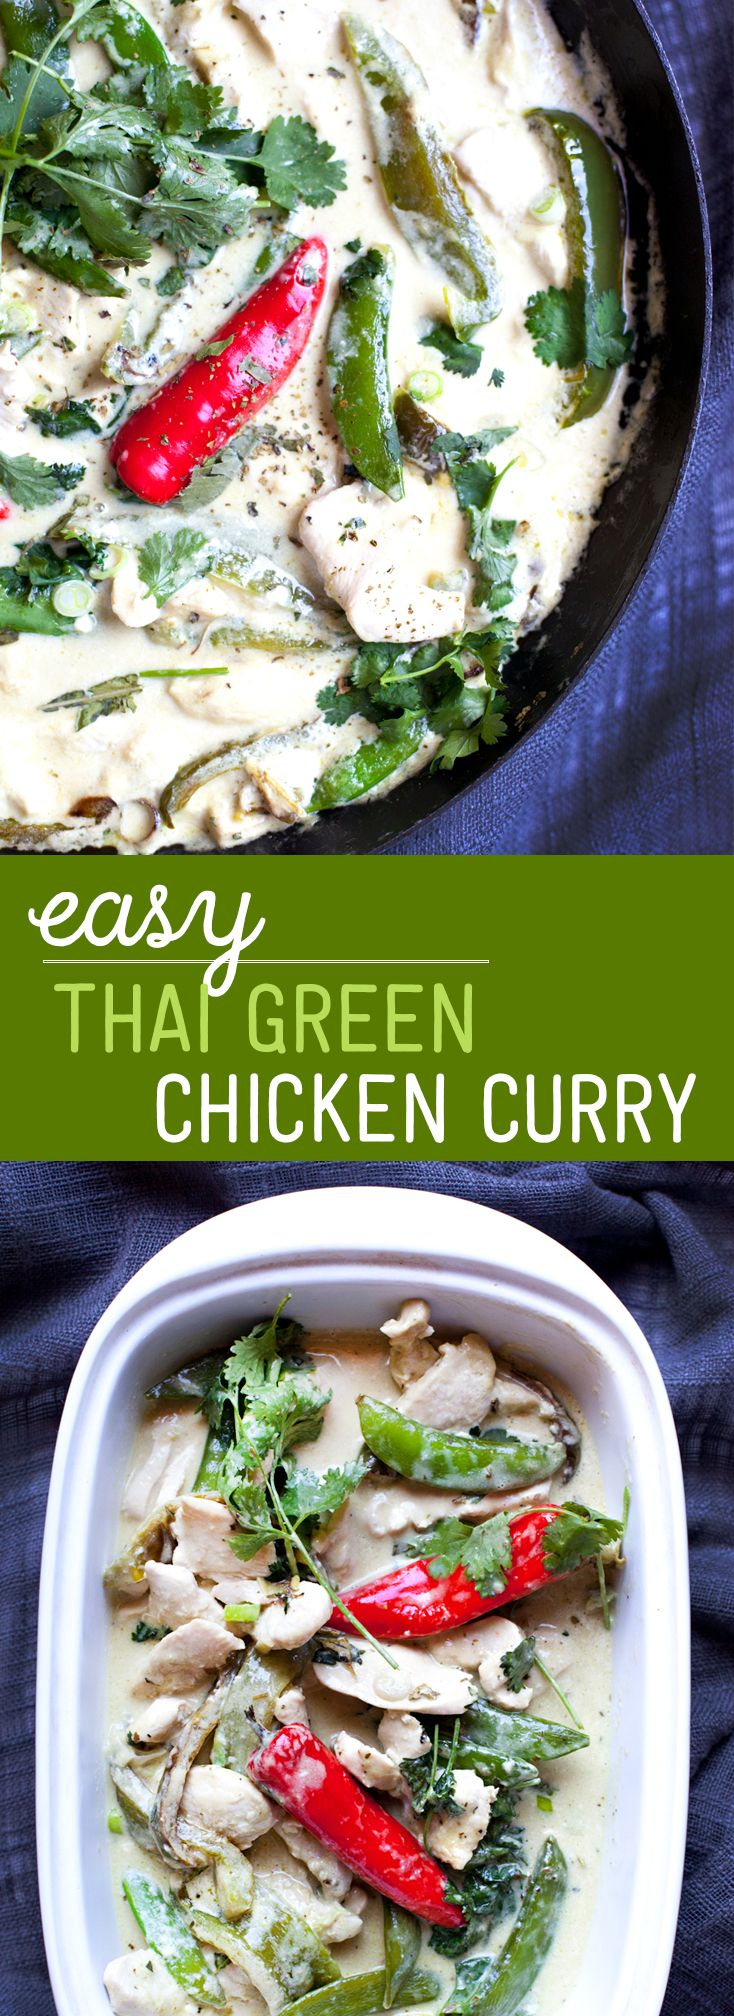 Easy Thai Green Chicken Curry - did red/green peppers, snap peas, bok choy and mix of green/red curry paste